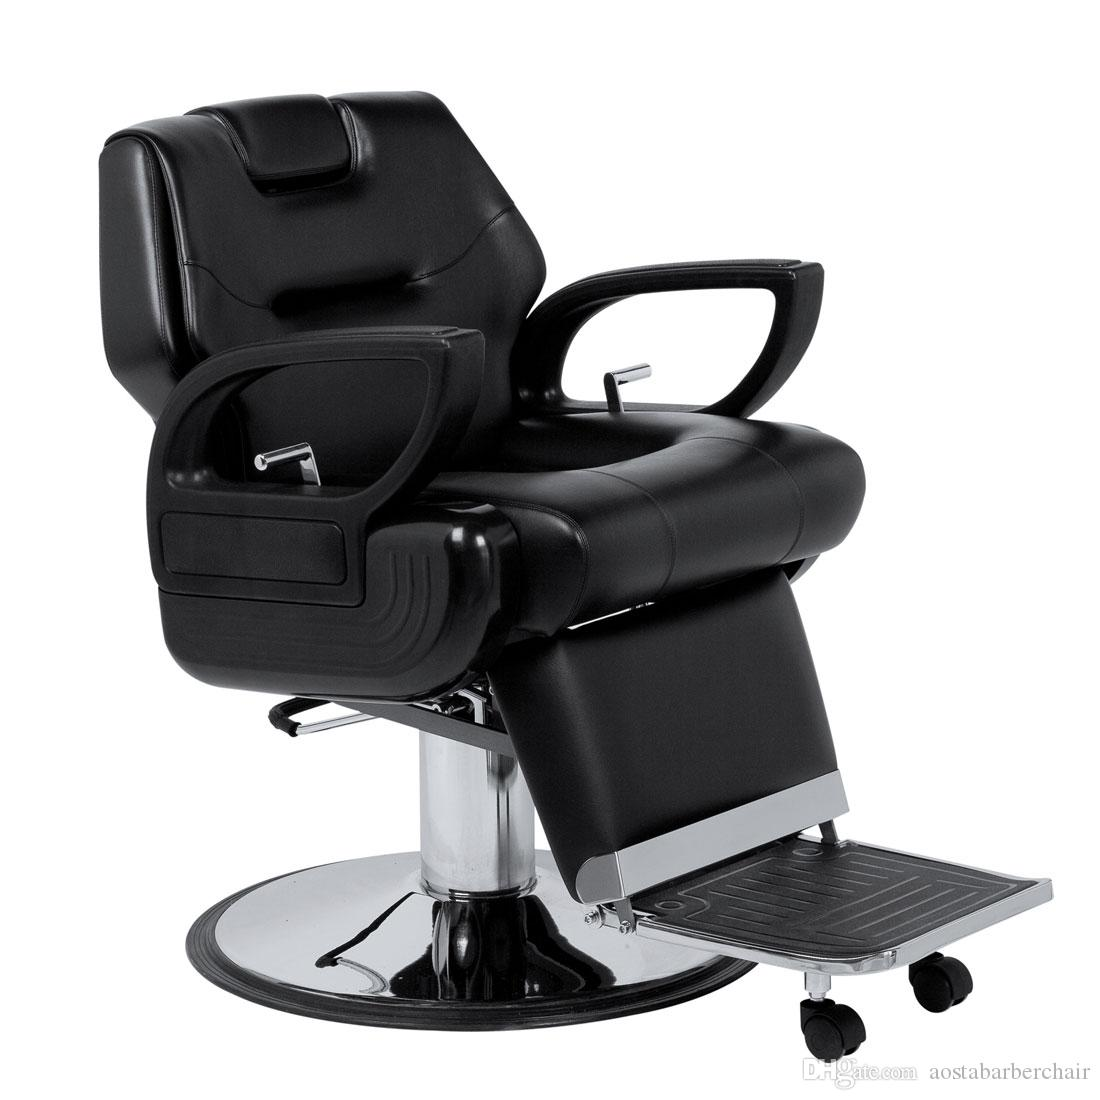 Black salon chairs - 2017 Black Barber Chair For Man Hot Sale Salon Chairs Modern Barber Chair Comfortable Hairdressing Chair From Aostabarberchair 211 06 Dhgate Com